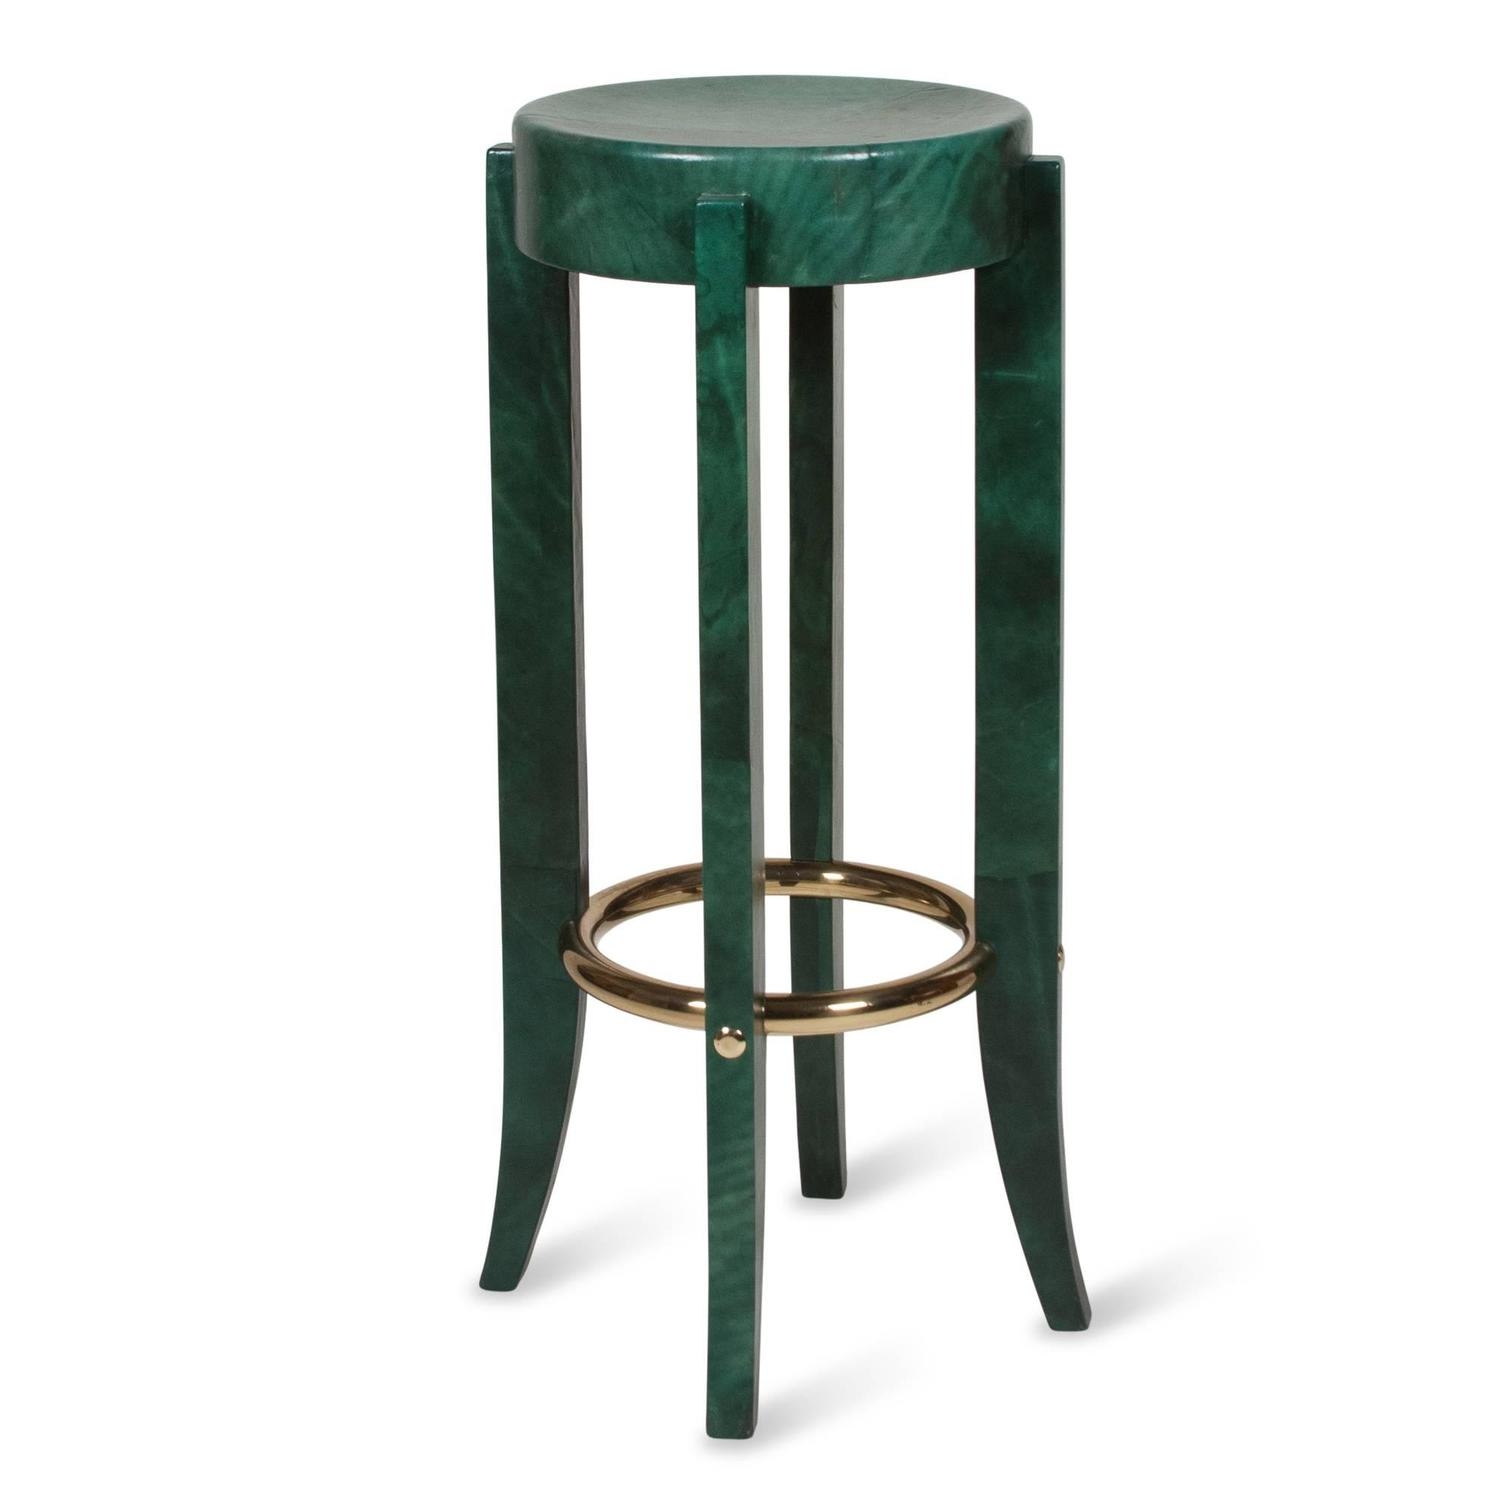 Green Parchment Bar Stool by Karl Springer For Sale at 1stdibs : 41873z from www.1stdibs.com size 1500 x 1500 jpeg 61kB